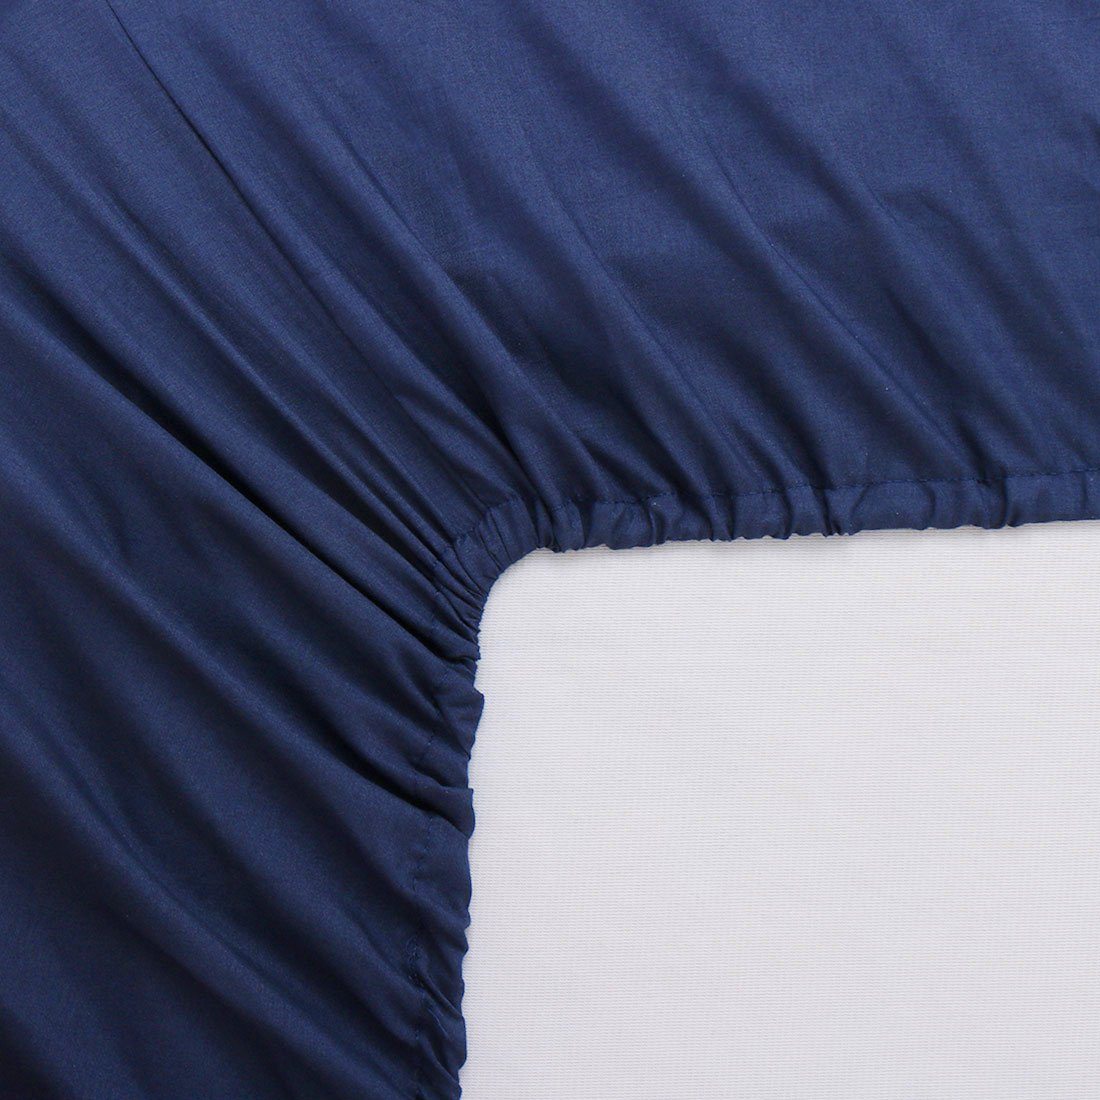 uxcell Full Size Fitted Sheet Only, 200 Thread Count 100% Cotton Fitted Bed Sheet with 15'' Deep Pocket - Breathable Durable and Comfortable Bottom Sheet (Full, Navy Blue)